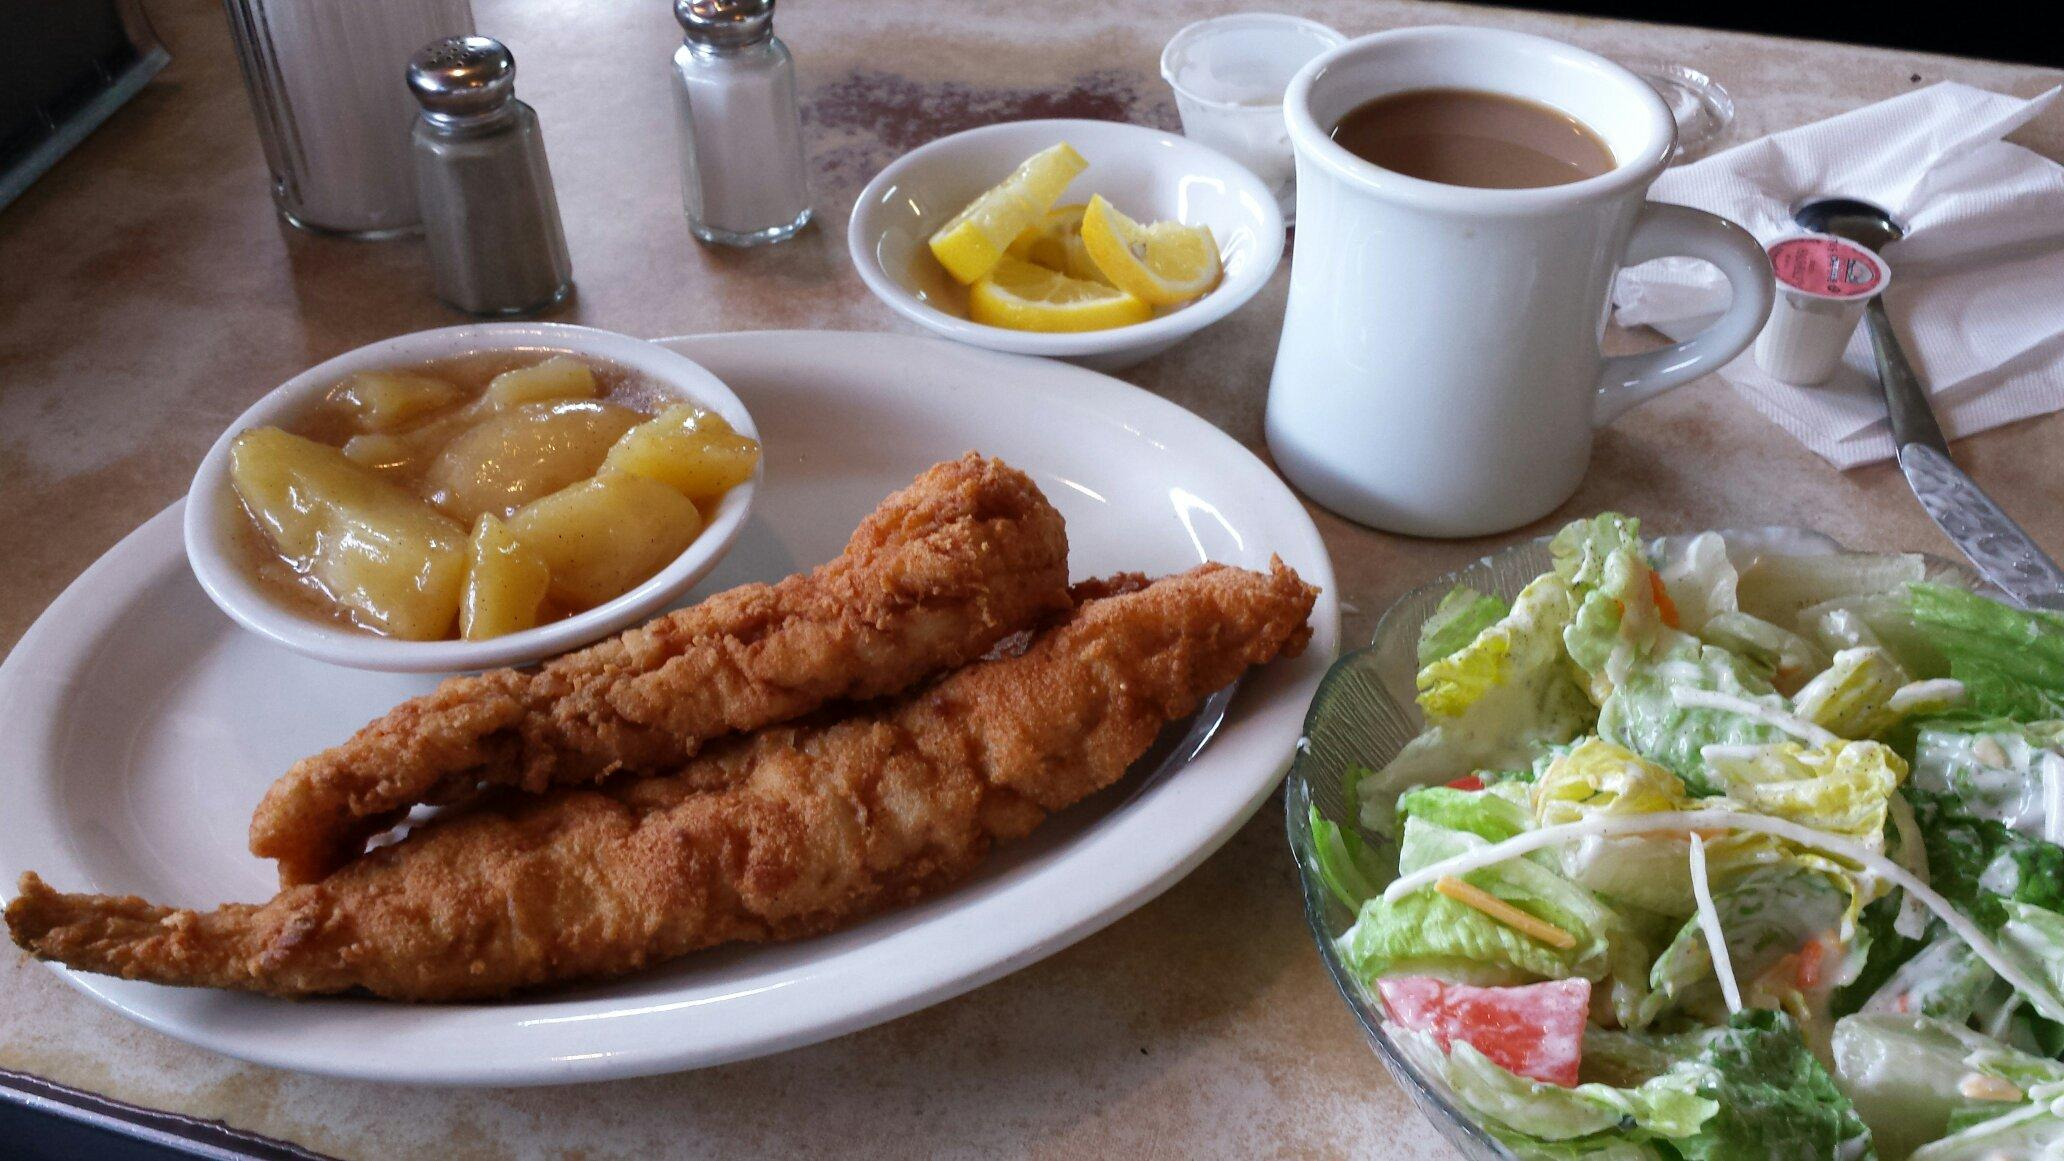 Chicken strips with side of apples and side salad.